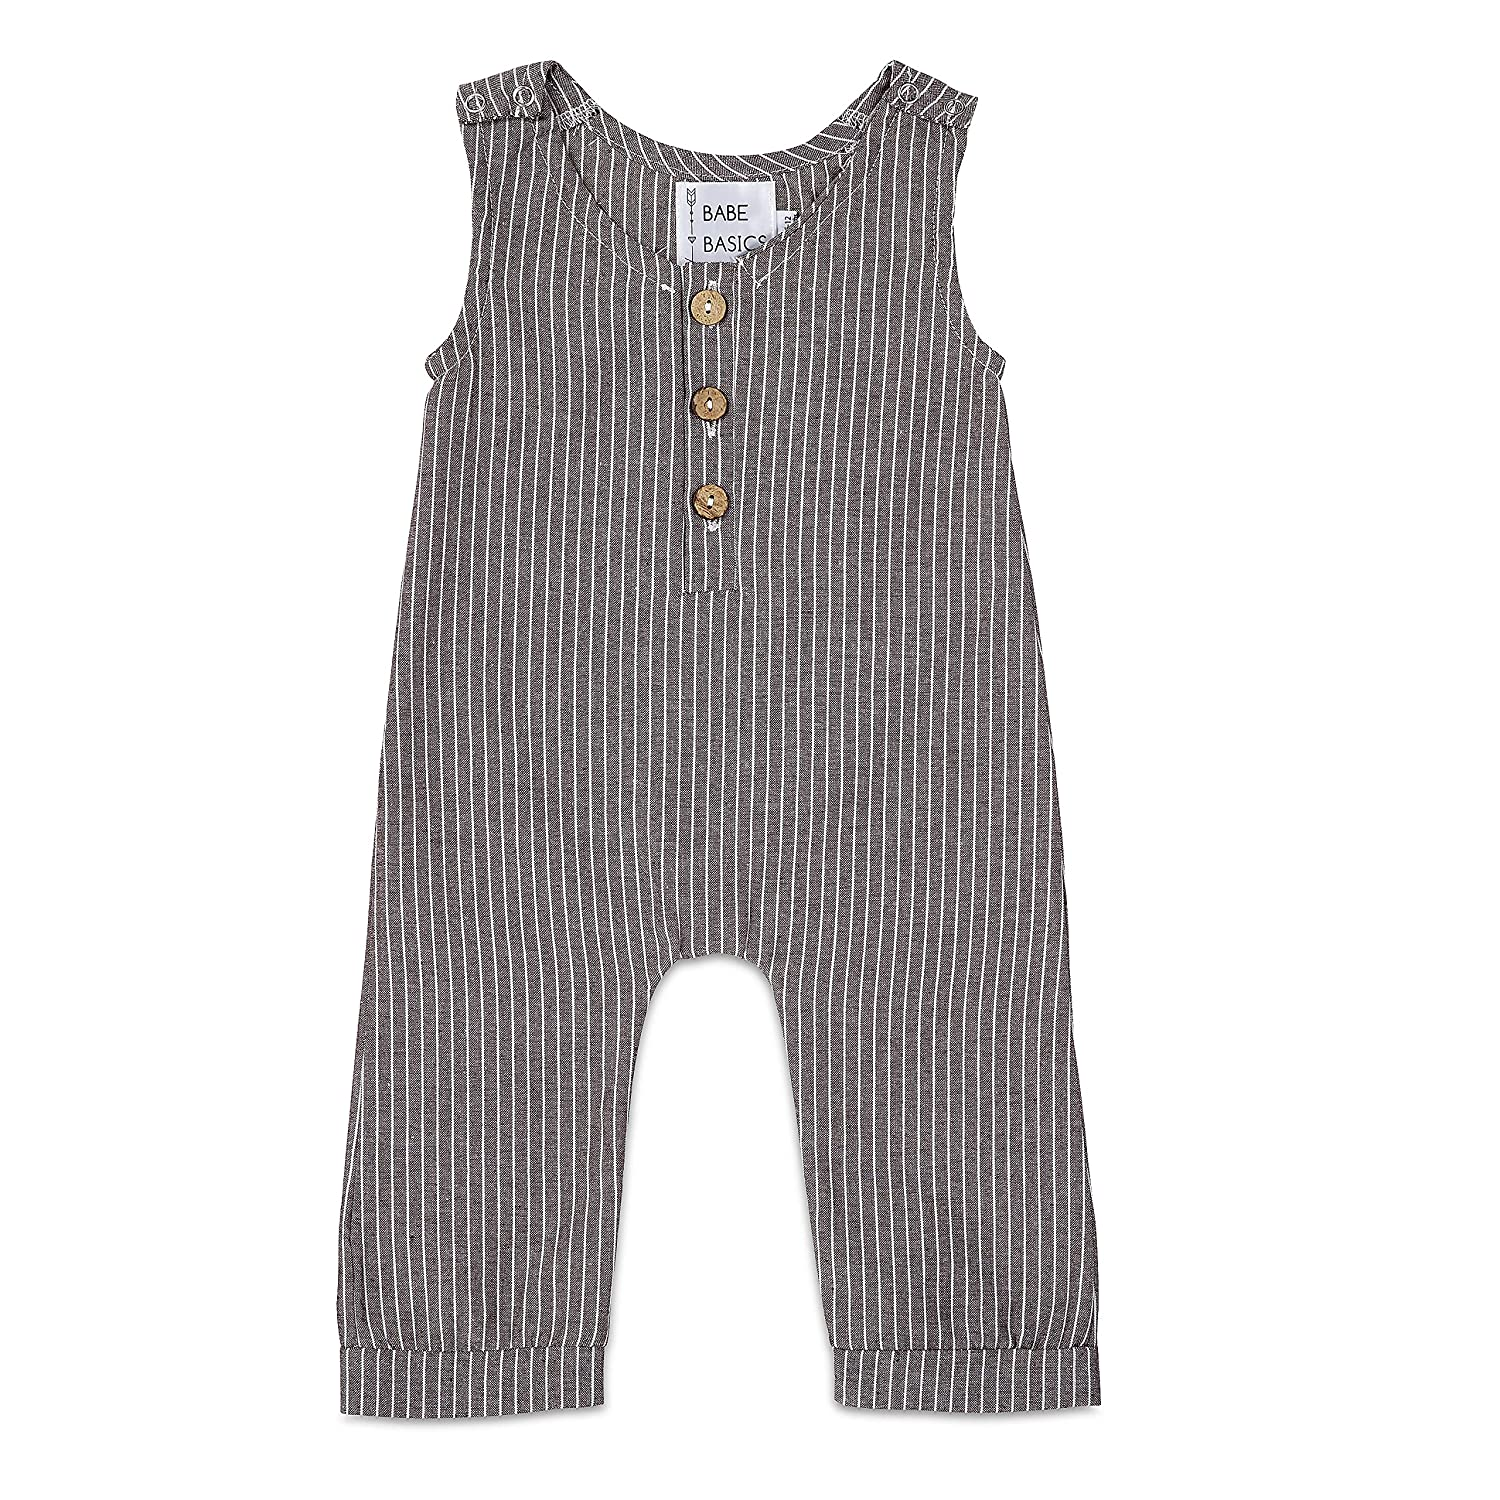 Babe Basics Linen Baby Romper | Baby Boy Fall Romper | Fall Photoshoot Outfit